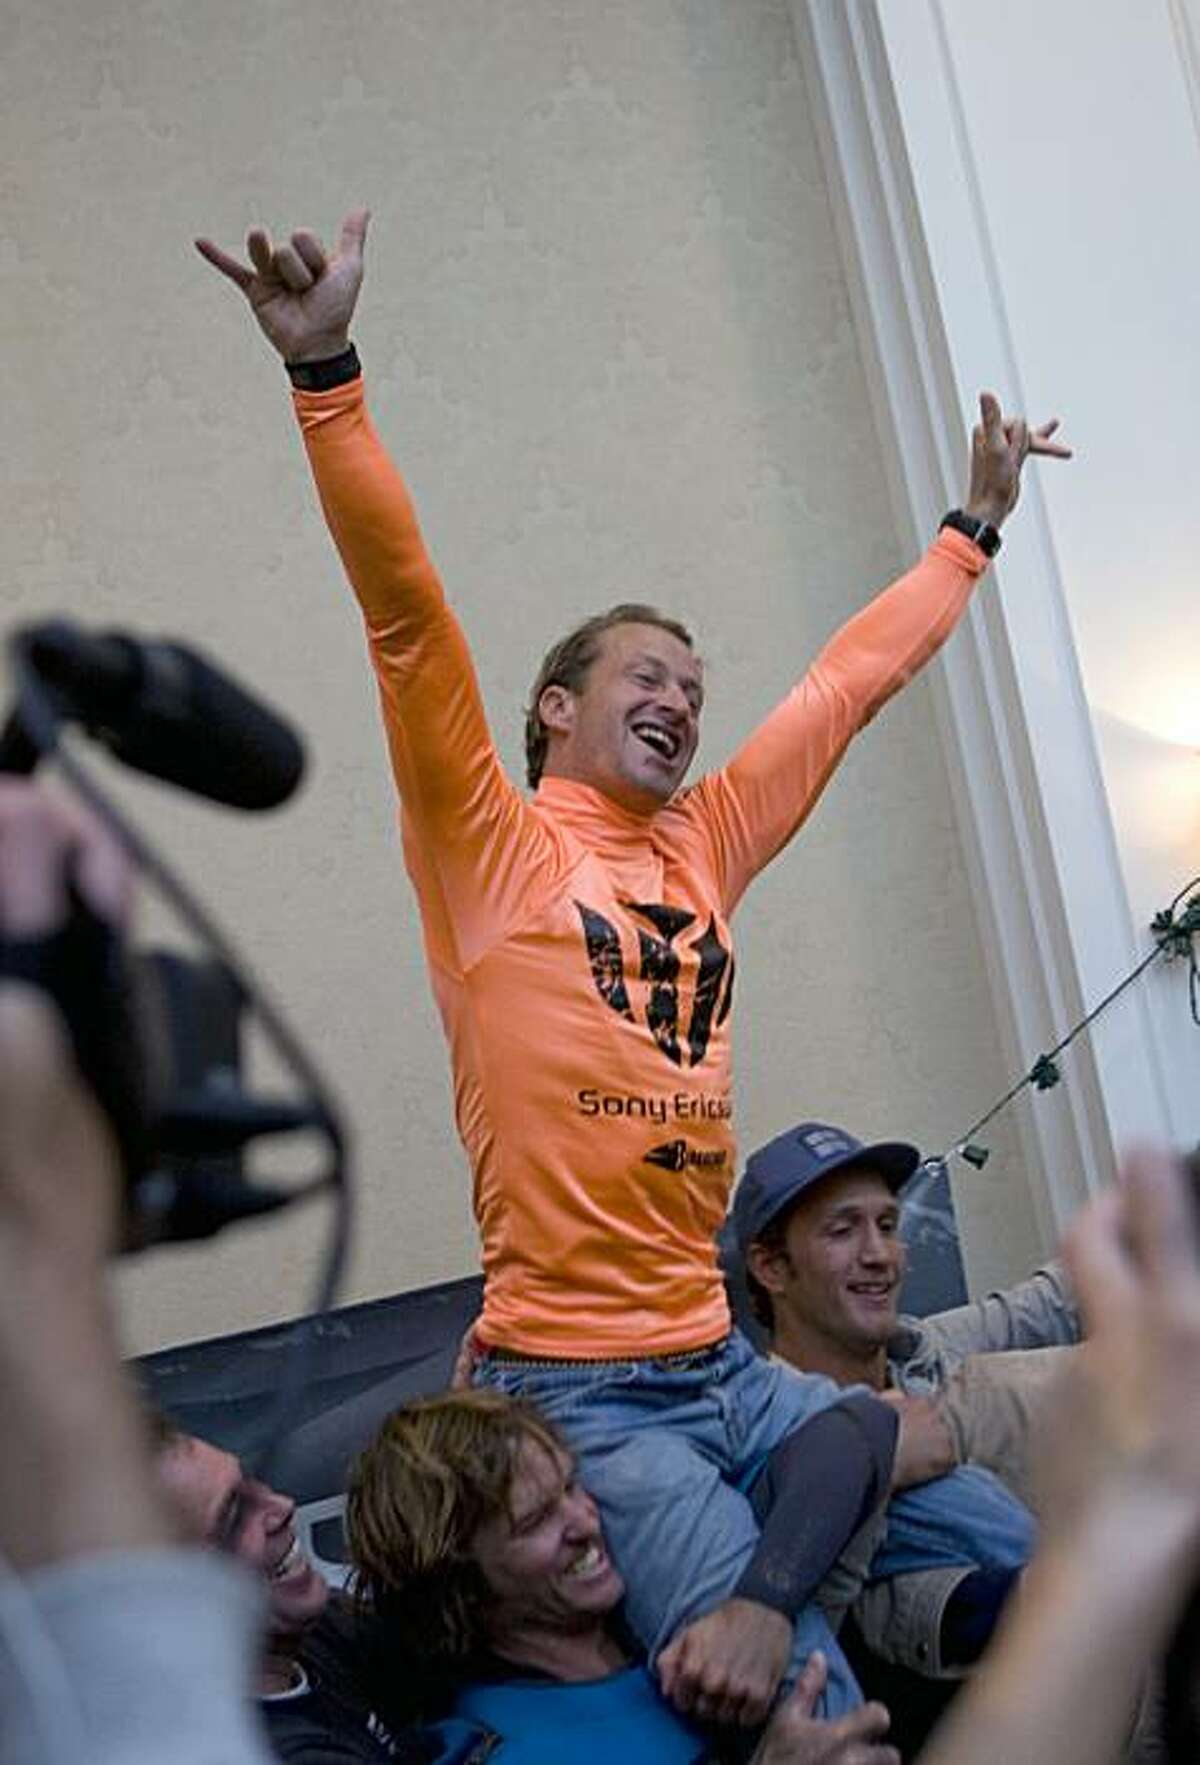 South African surfer Chris Bertish is hoisted onto fellow surfers shoulders before accepting first place in the Mavericks Surf Contest Surfers in Half Moon Bay, Calif. on Saturday, Feb. 13, 2010.